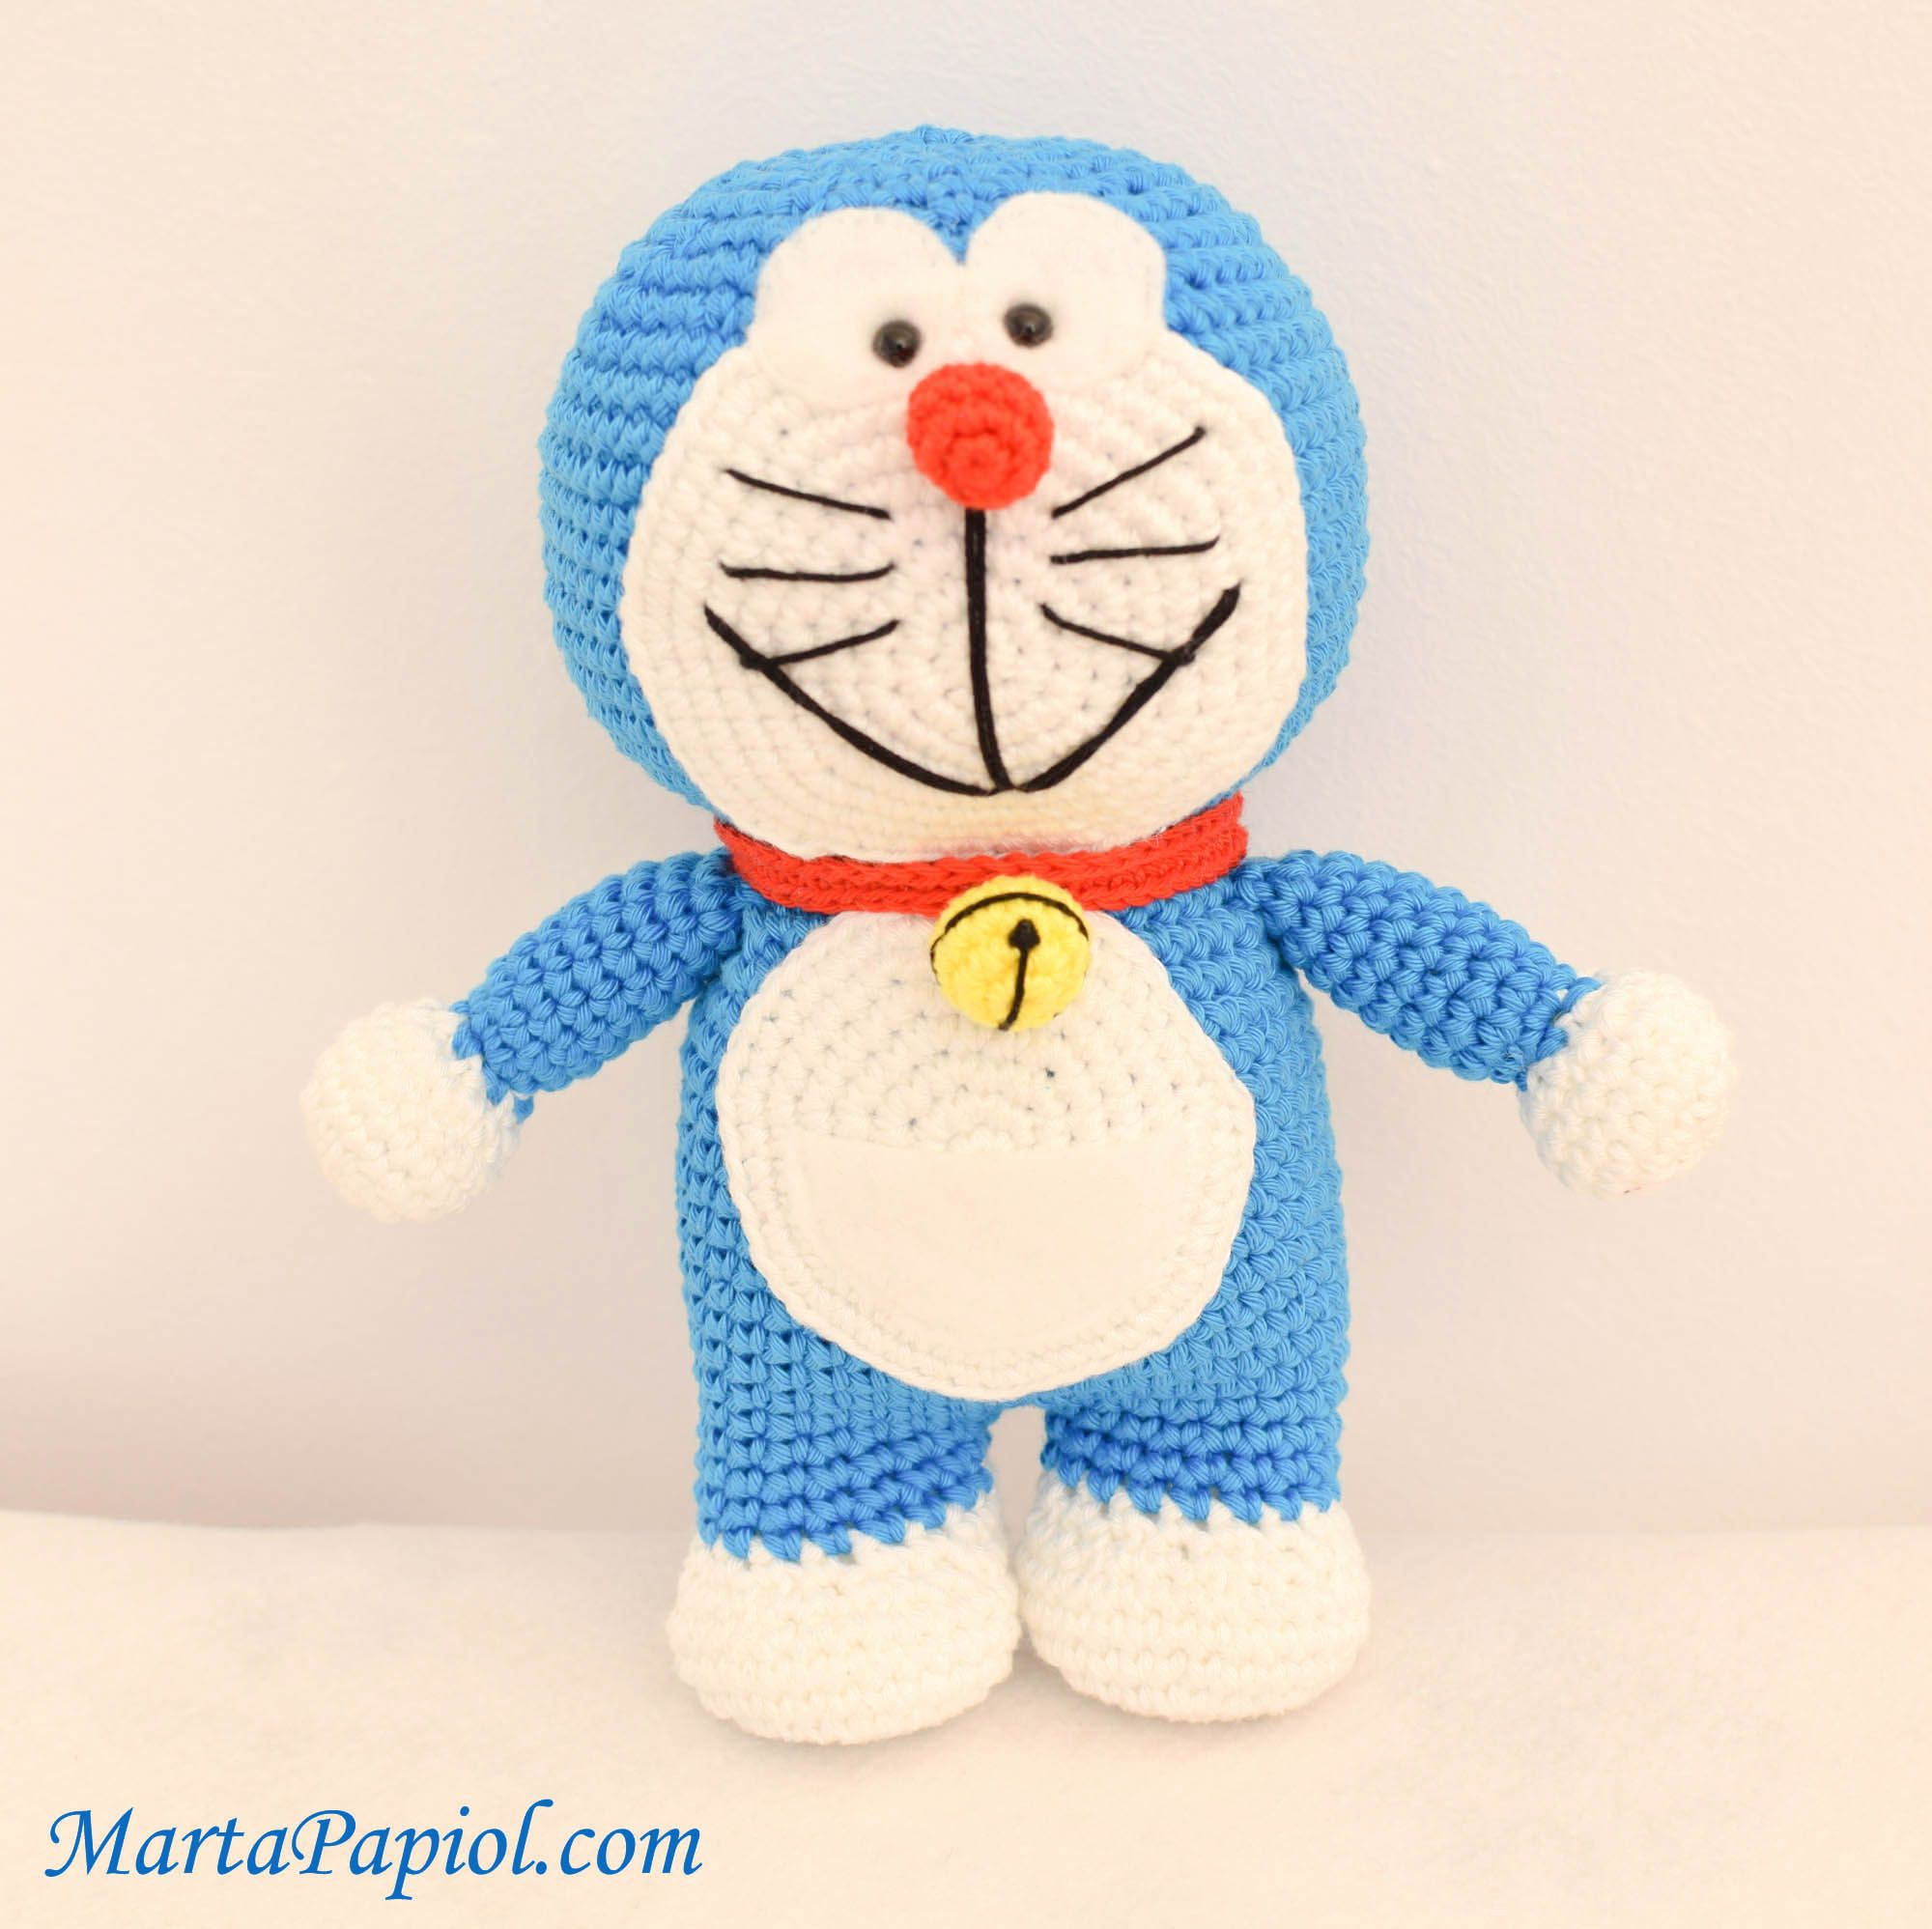 Doraemon amigurumi crochet | bordados | Pinterest | Gomitas, Bordado ...